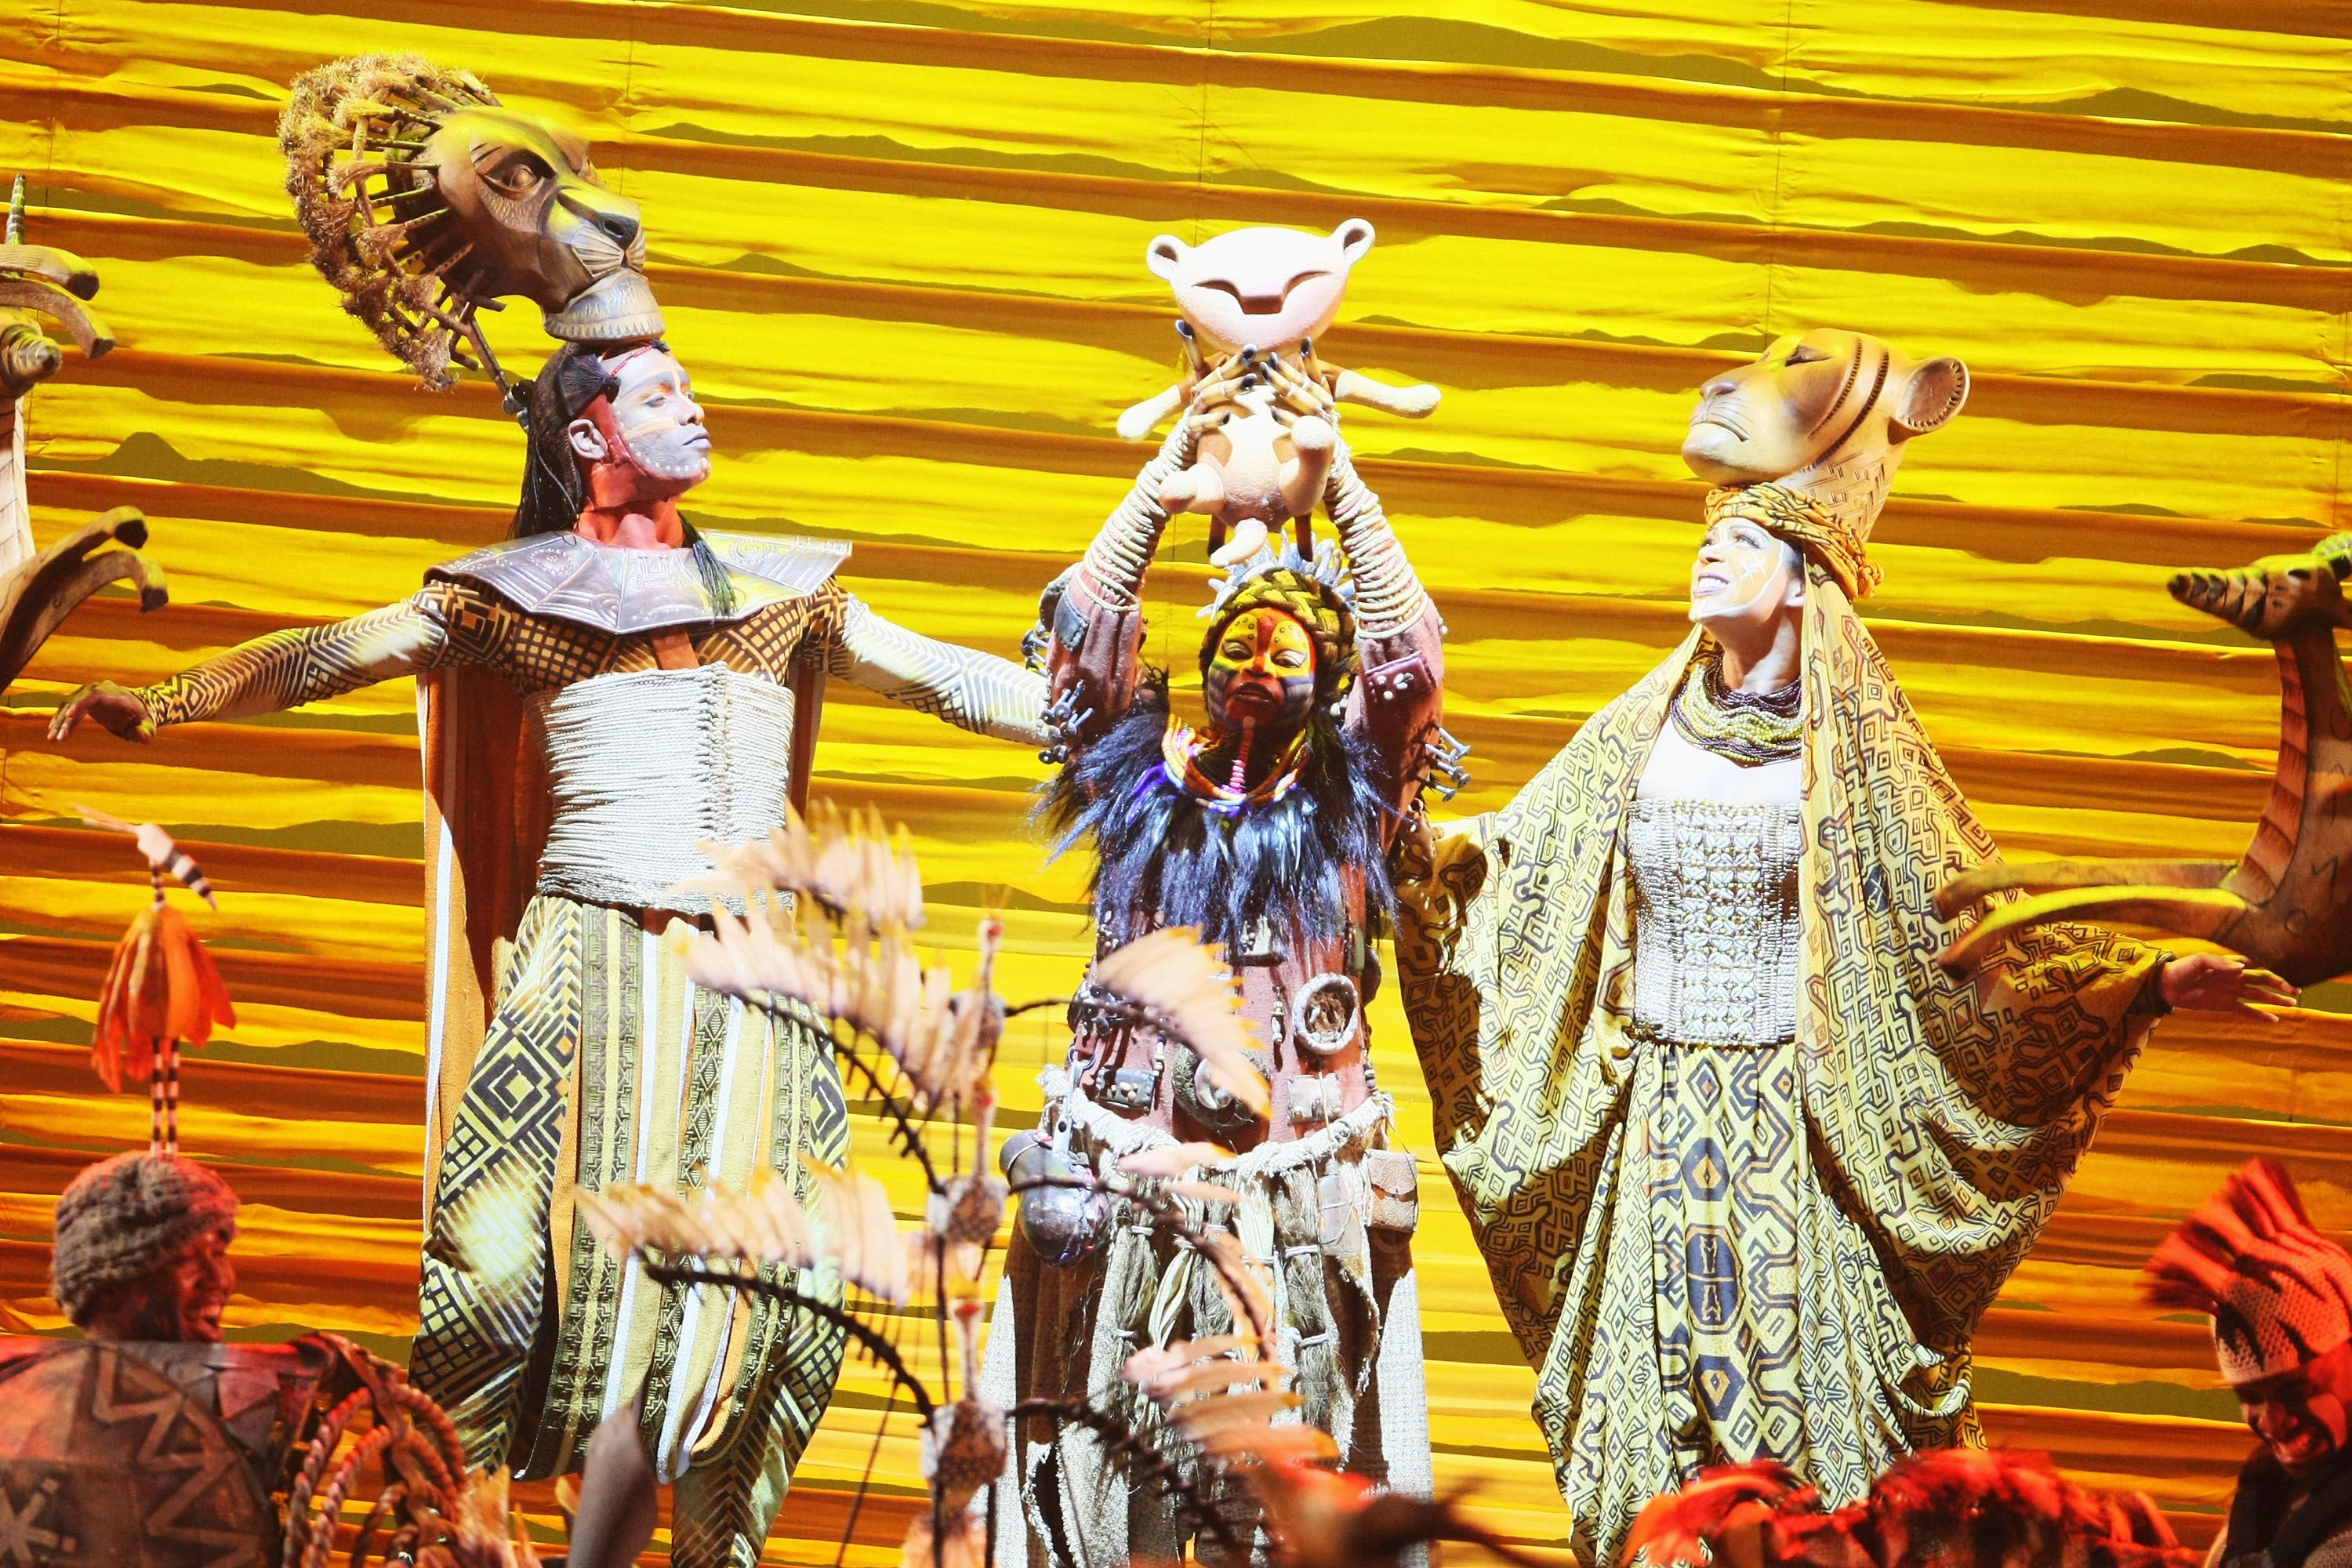 Performance of the Lion King on Broadway